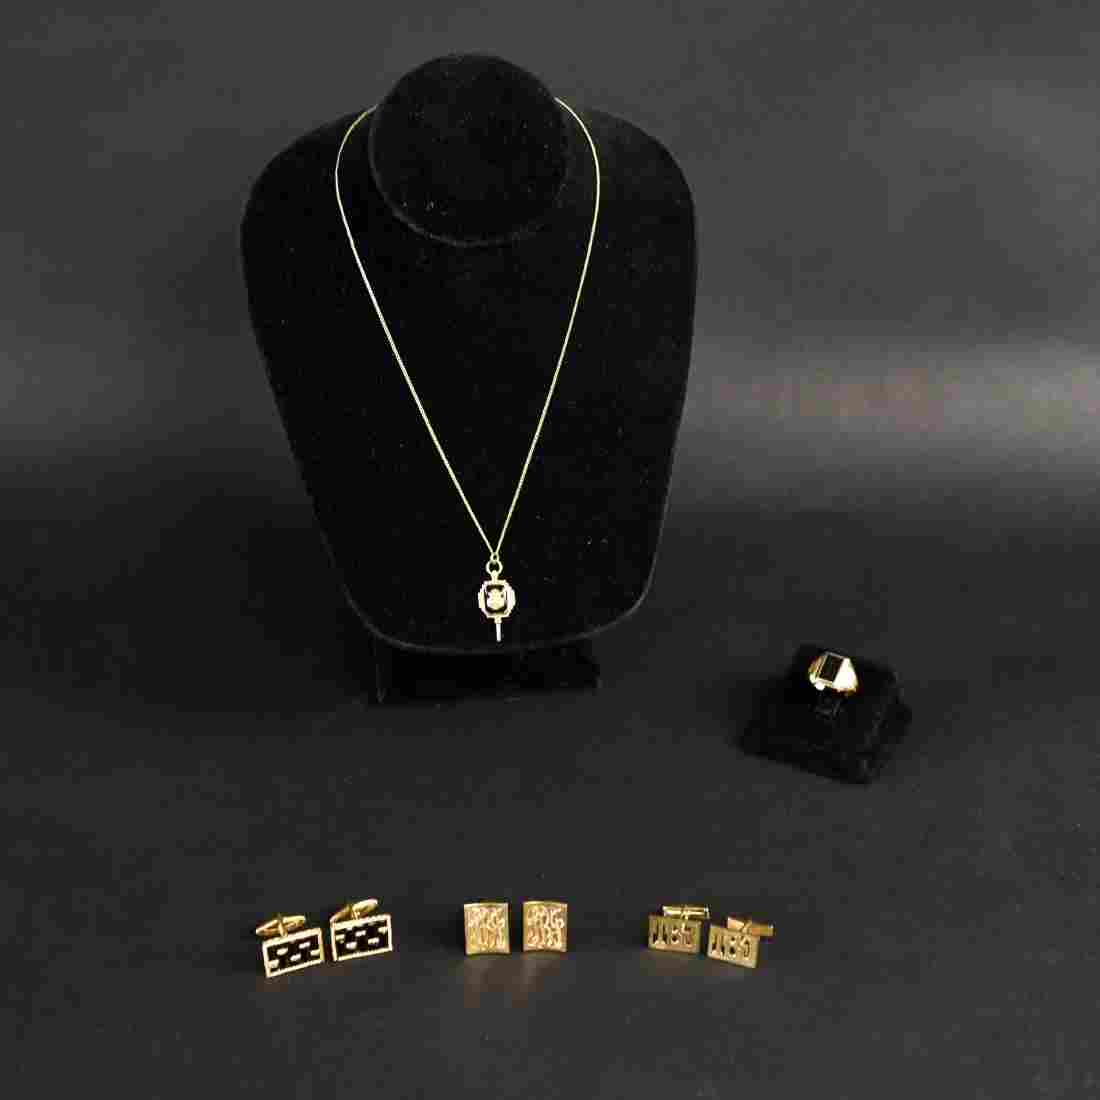 14K GOLD GROUPING INCL. RINGS AND CUFFLINKS